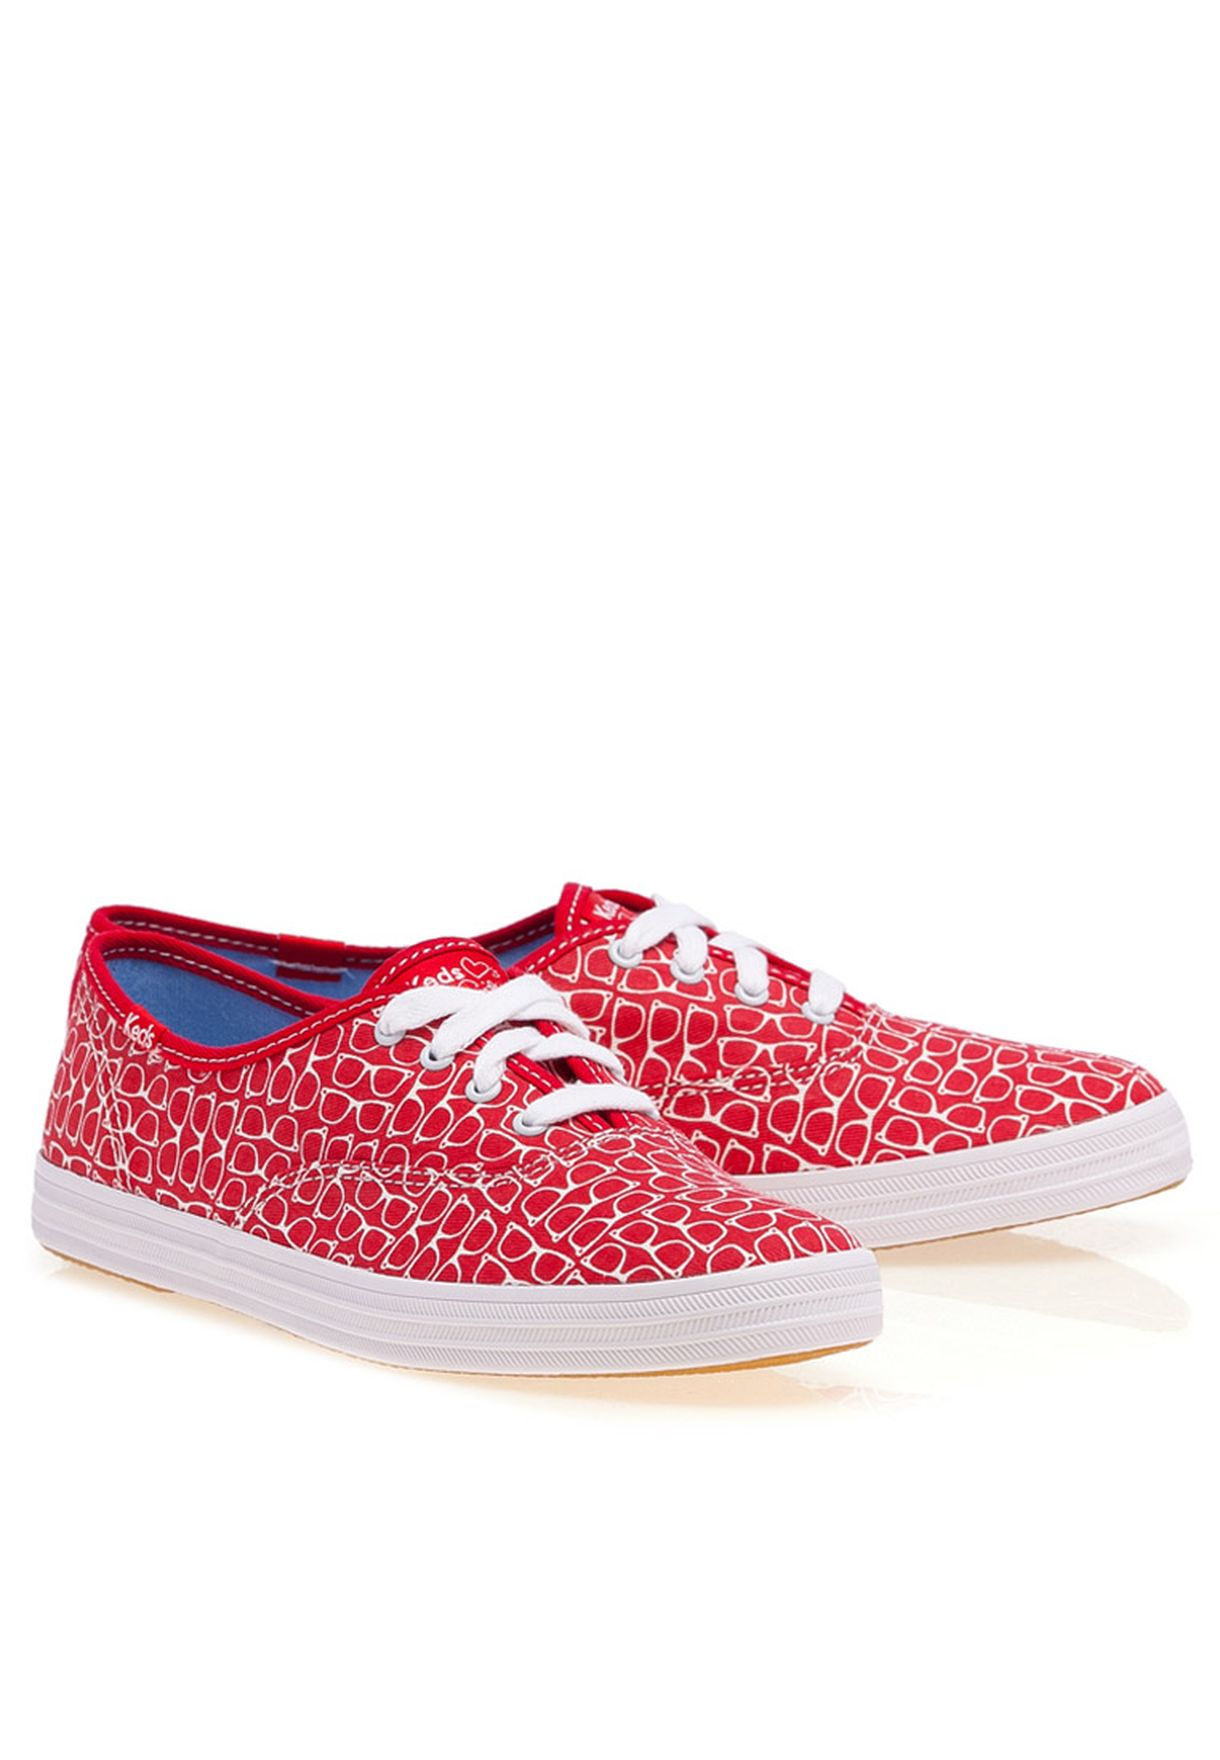 0f56b3de1 Shop Keds red Taylor Swift Champion CVO Sneakers for Women in UAE ...